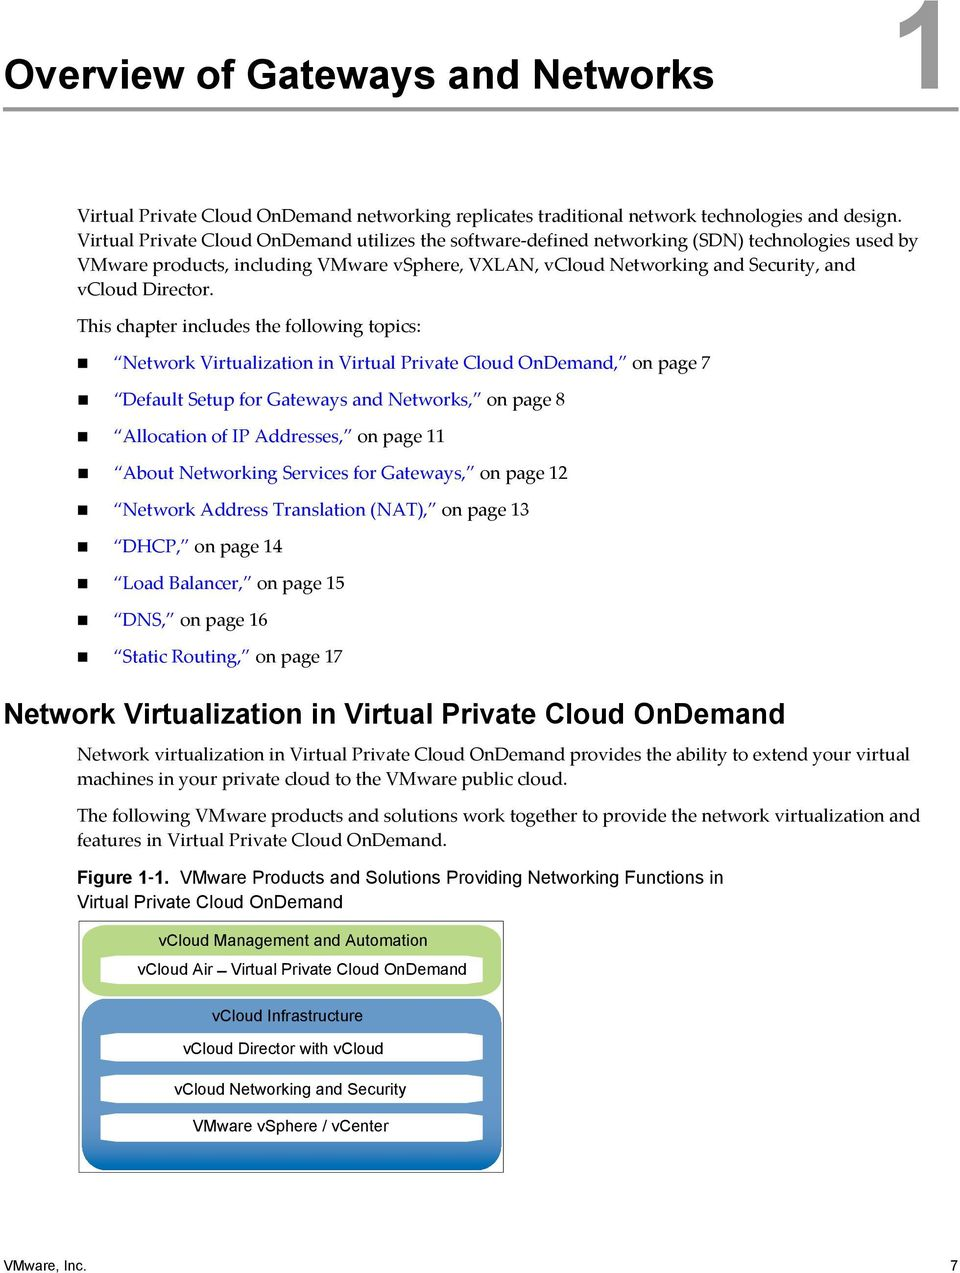 This chapter includes the following topics: Network Virtualization in Virtual Private Cloud OnDemand, on page 7 Default Setup for Gateways and Networks, on page 8 Allocation of IP Addresses, on page